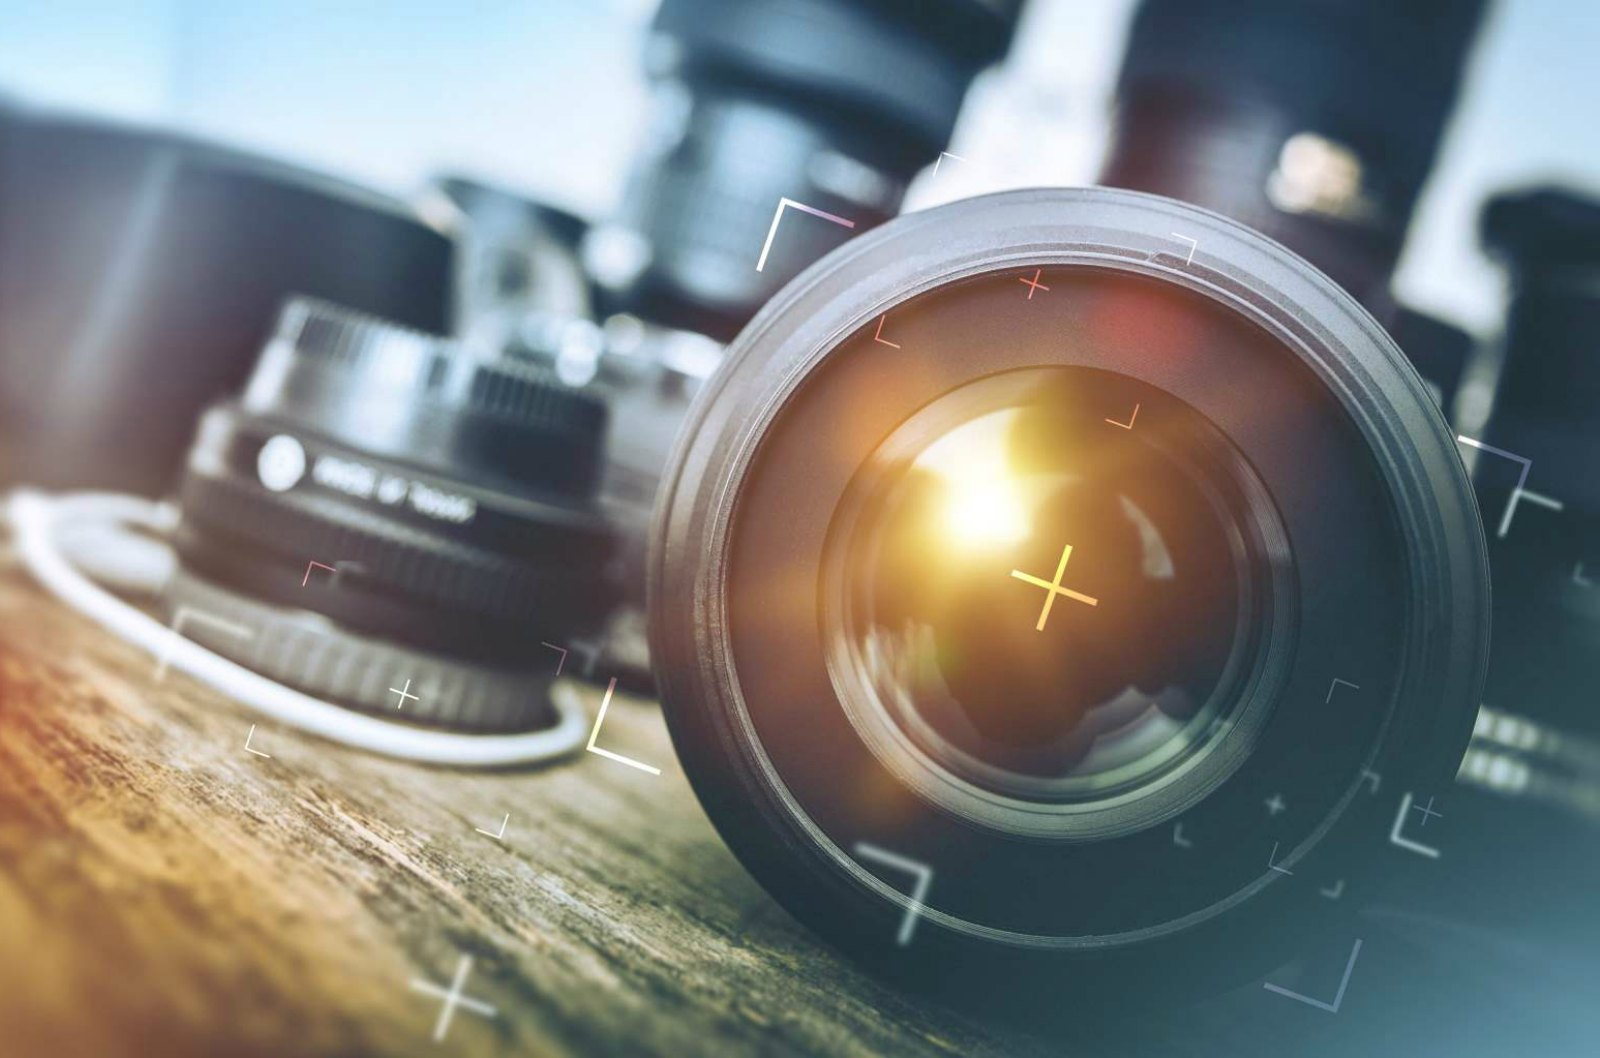 Adaptive Technologies Ideal for Small, Adjustable Camera Lenses